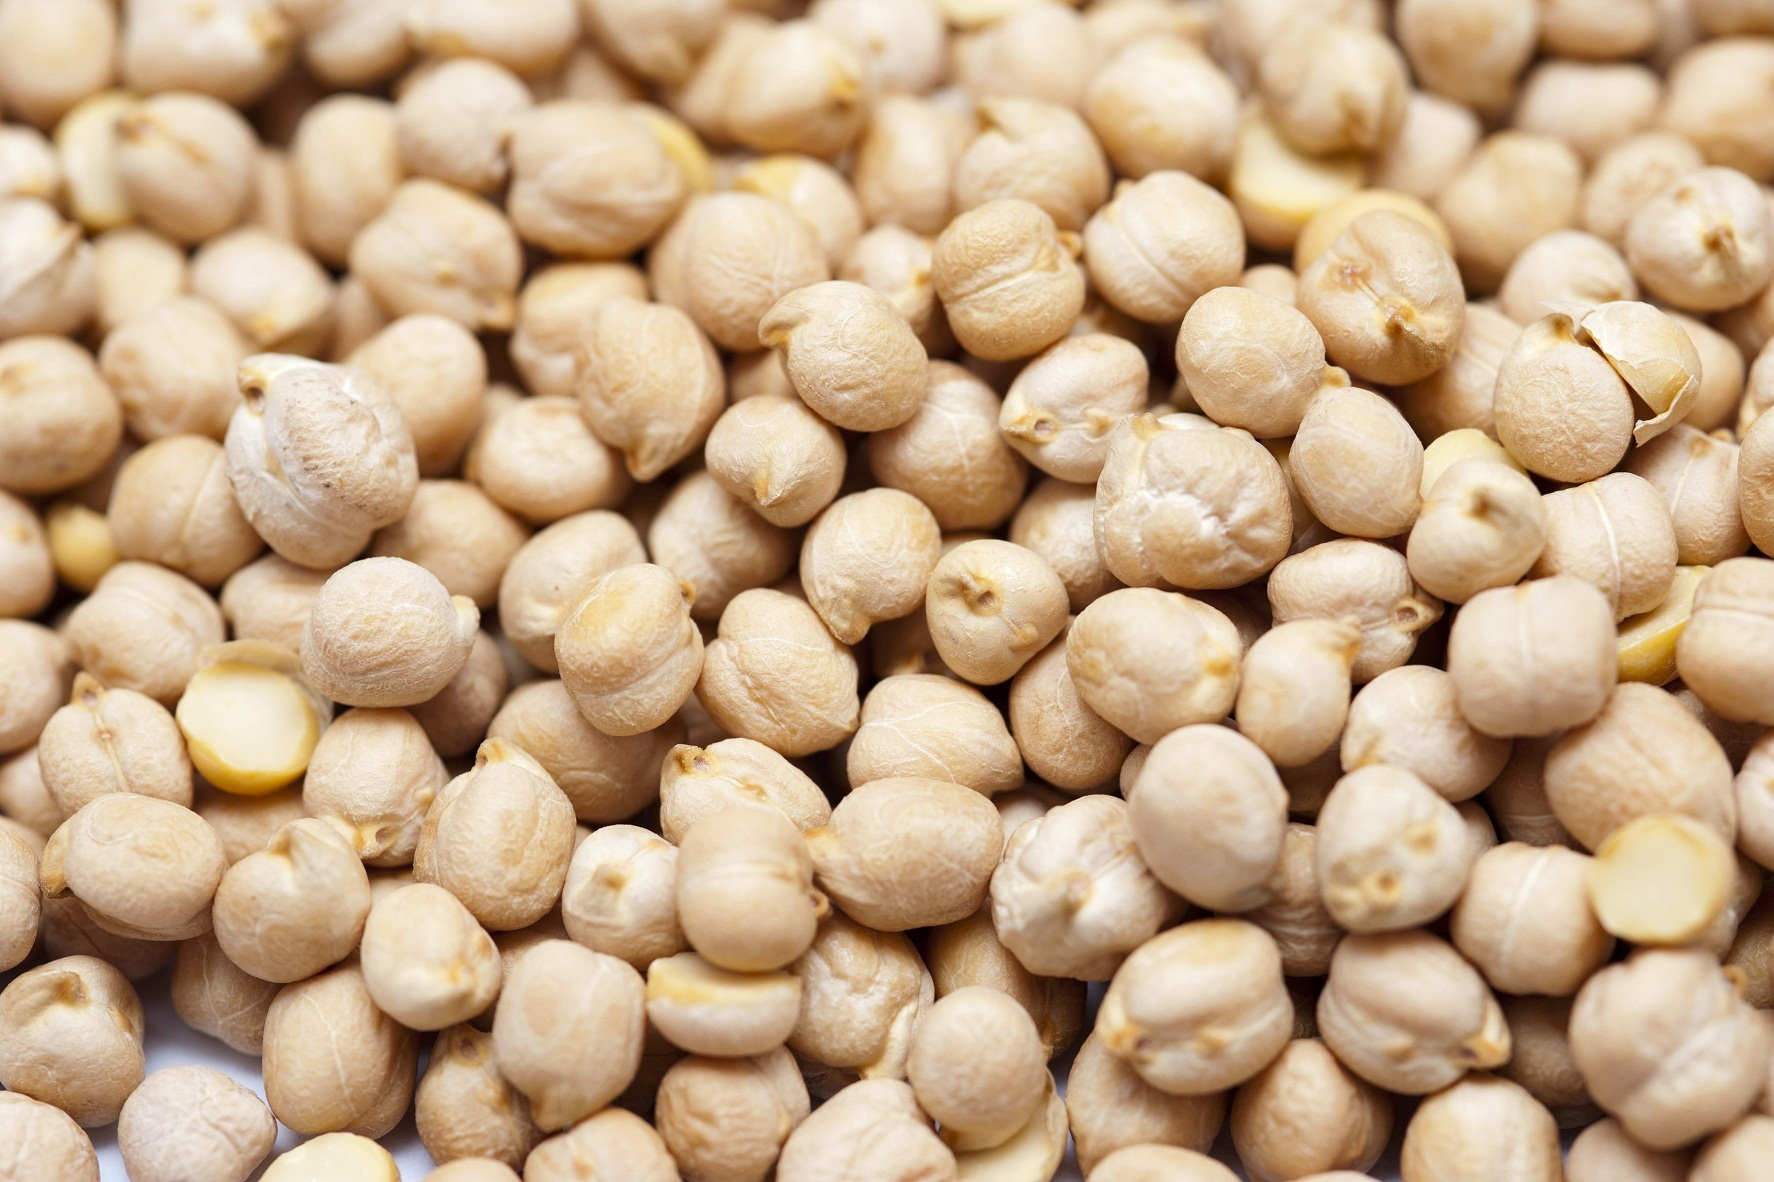 Background of chickpeas